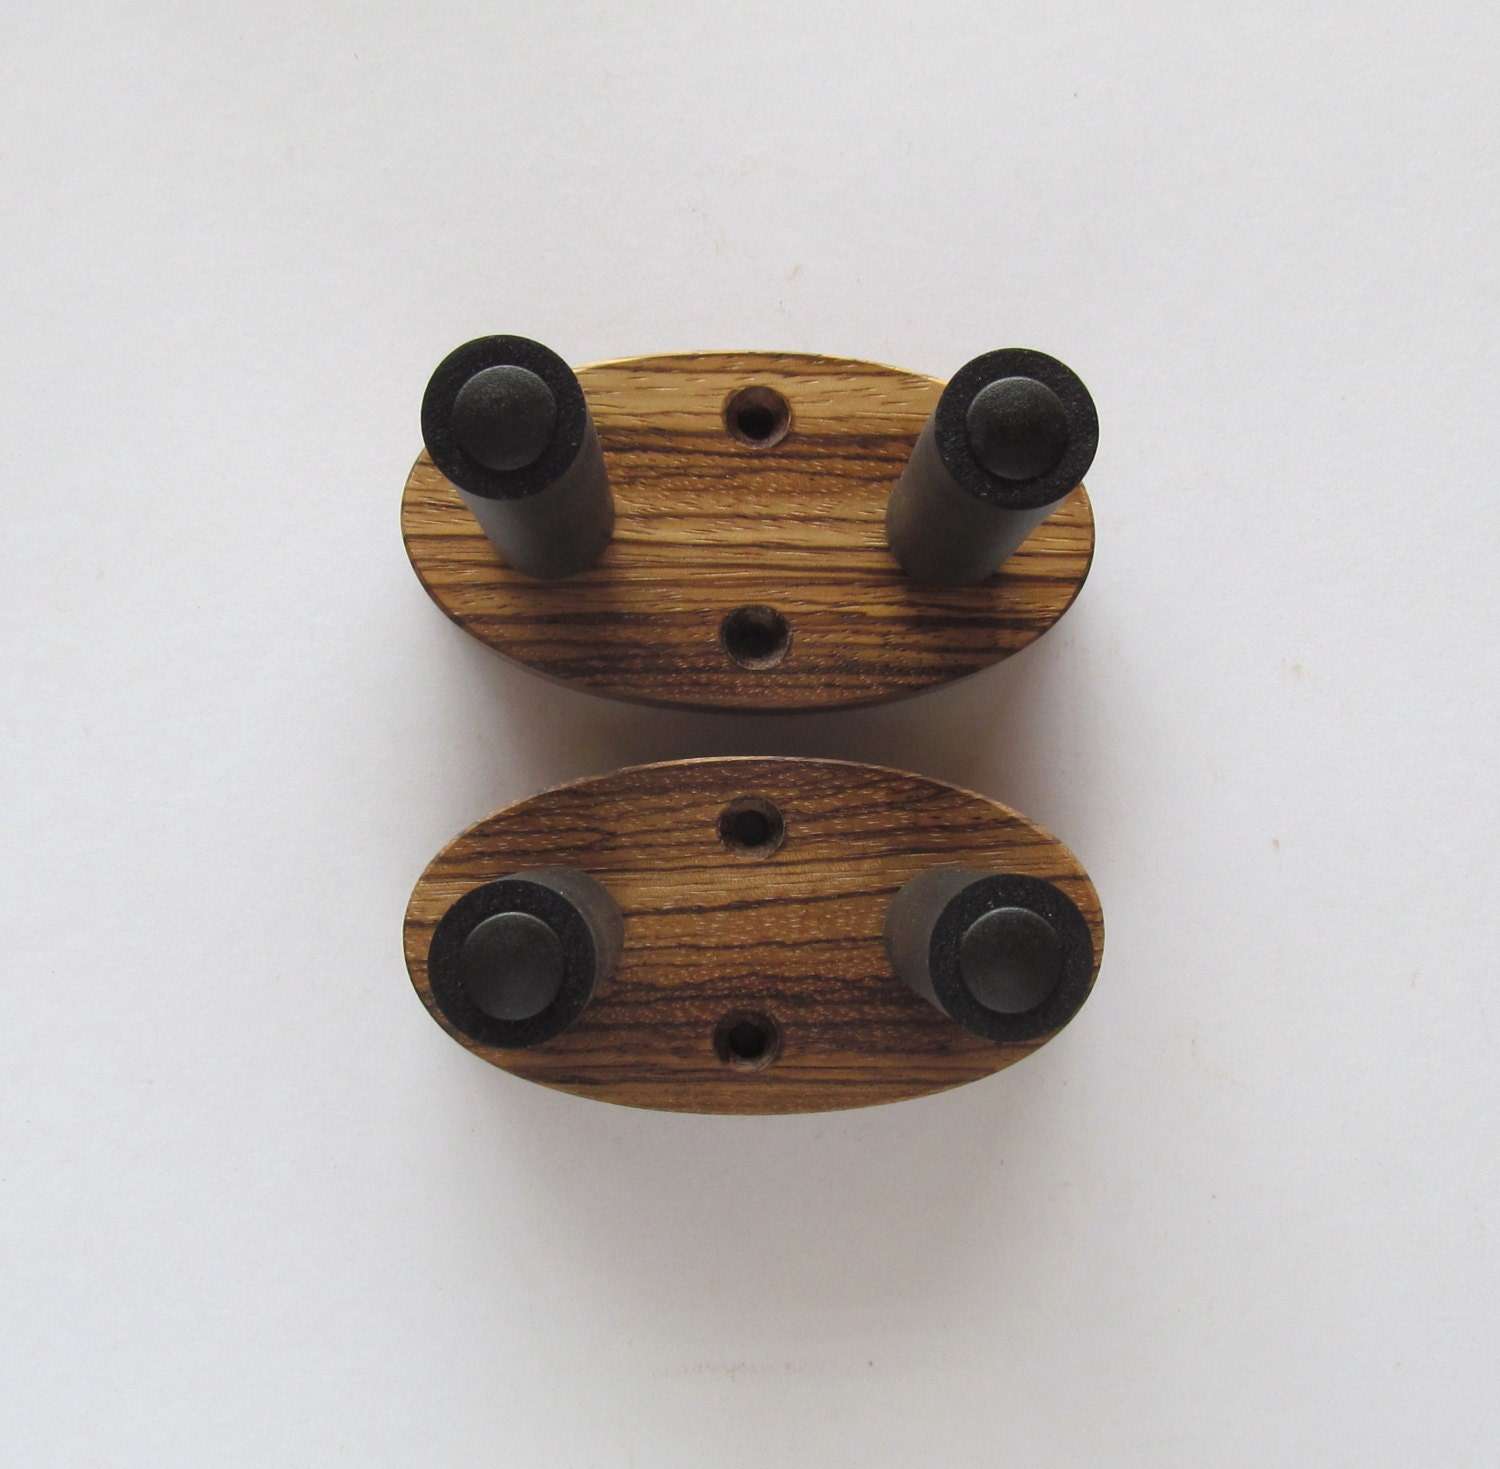 zebrawood ukulele wall mount hangers natural finish two pack. Black Bedroom Furniture Sets. Home Design Ideas